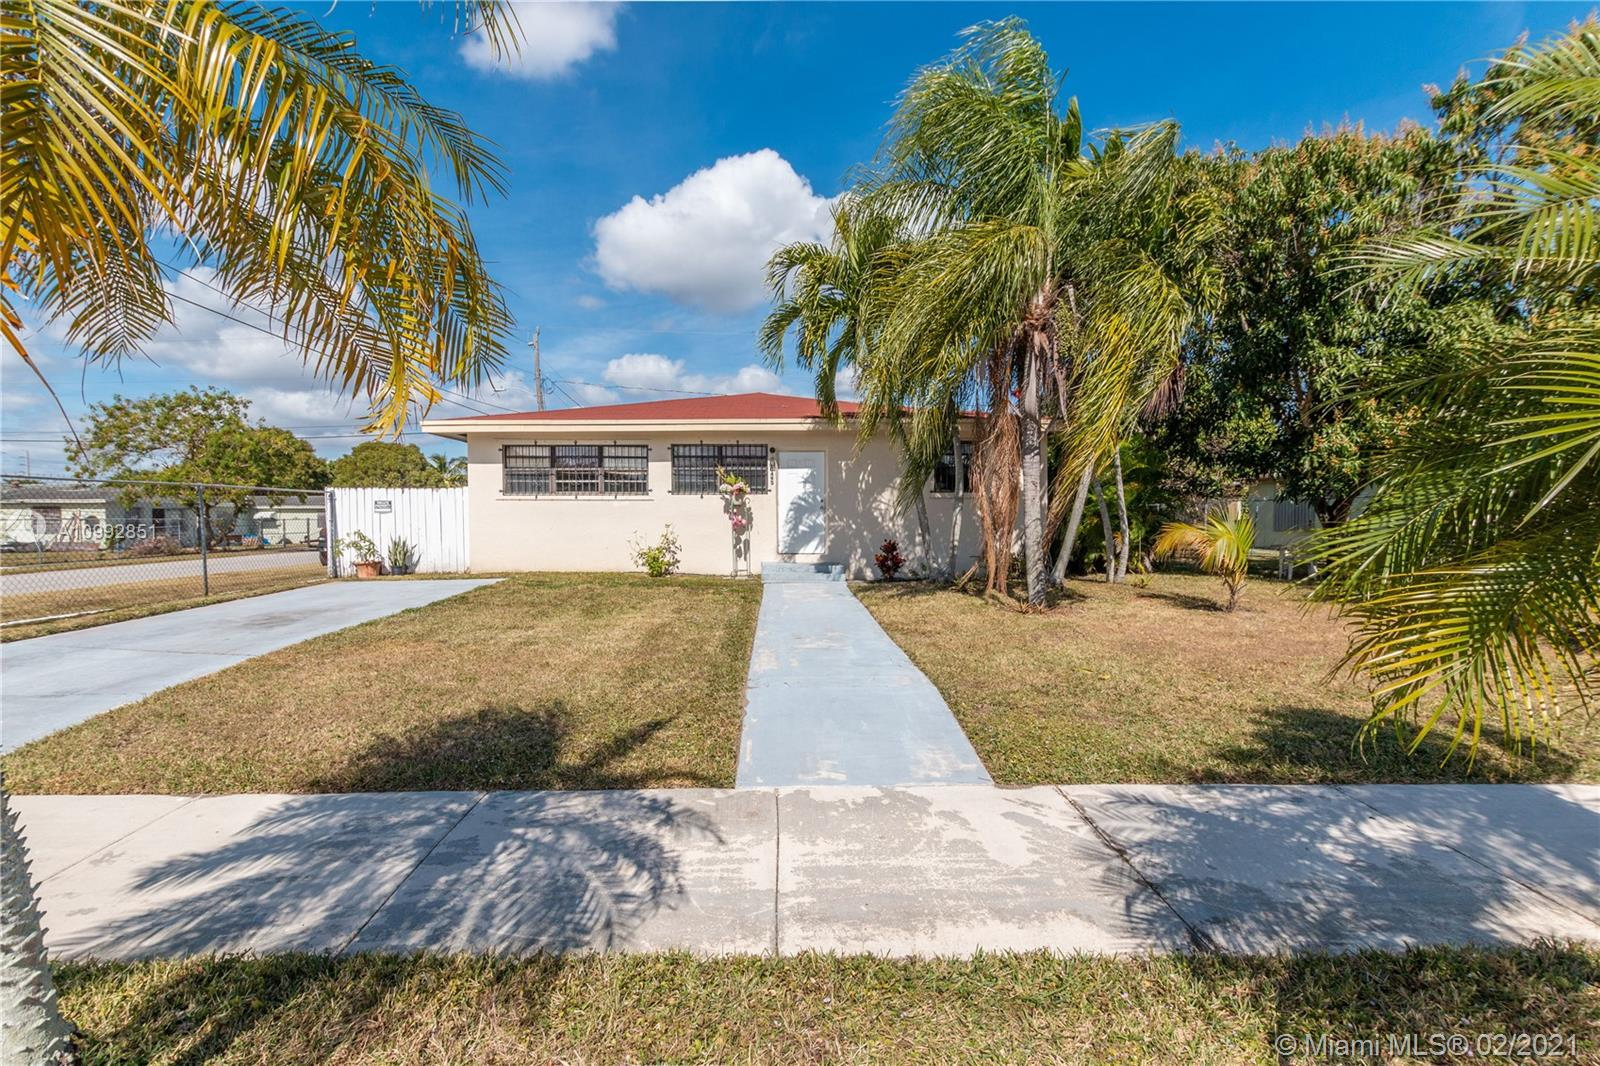 Come see this beautiful 3 bedroom and 2 bathroom home nestled in the heart of Miami. This completely tiled home has an updated kitchen with SS appliances and updated bathrooms to compliment as well. The large backyard features beautiful and mature mango trees and even has enough room for a pool. Perfect for any family or investor and minutes from the turnpike.